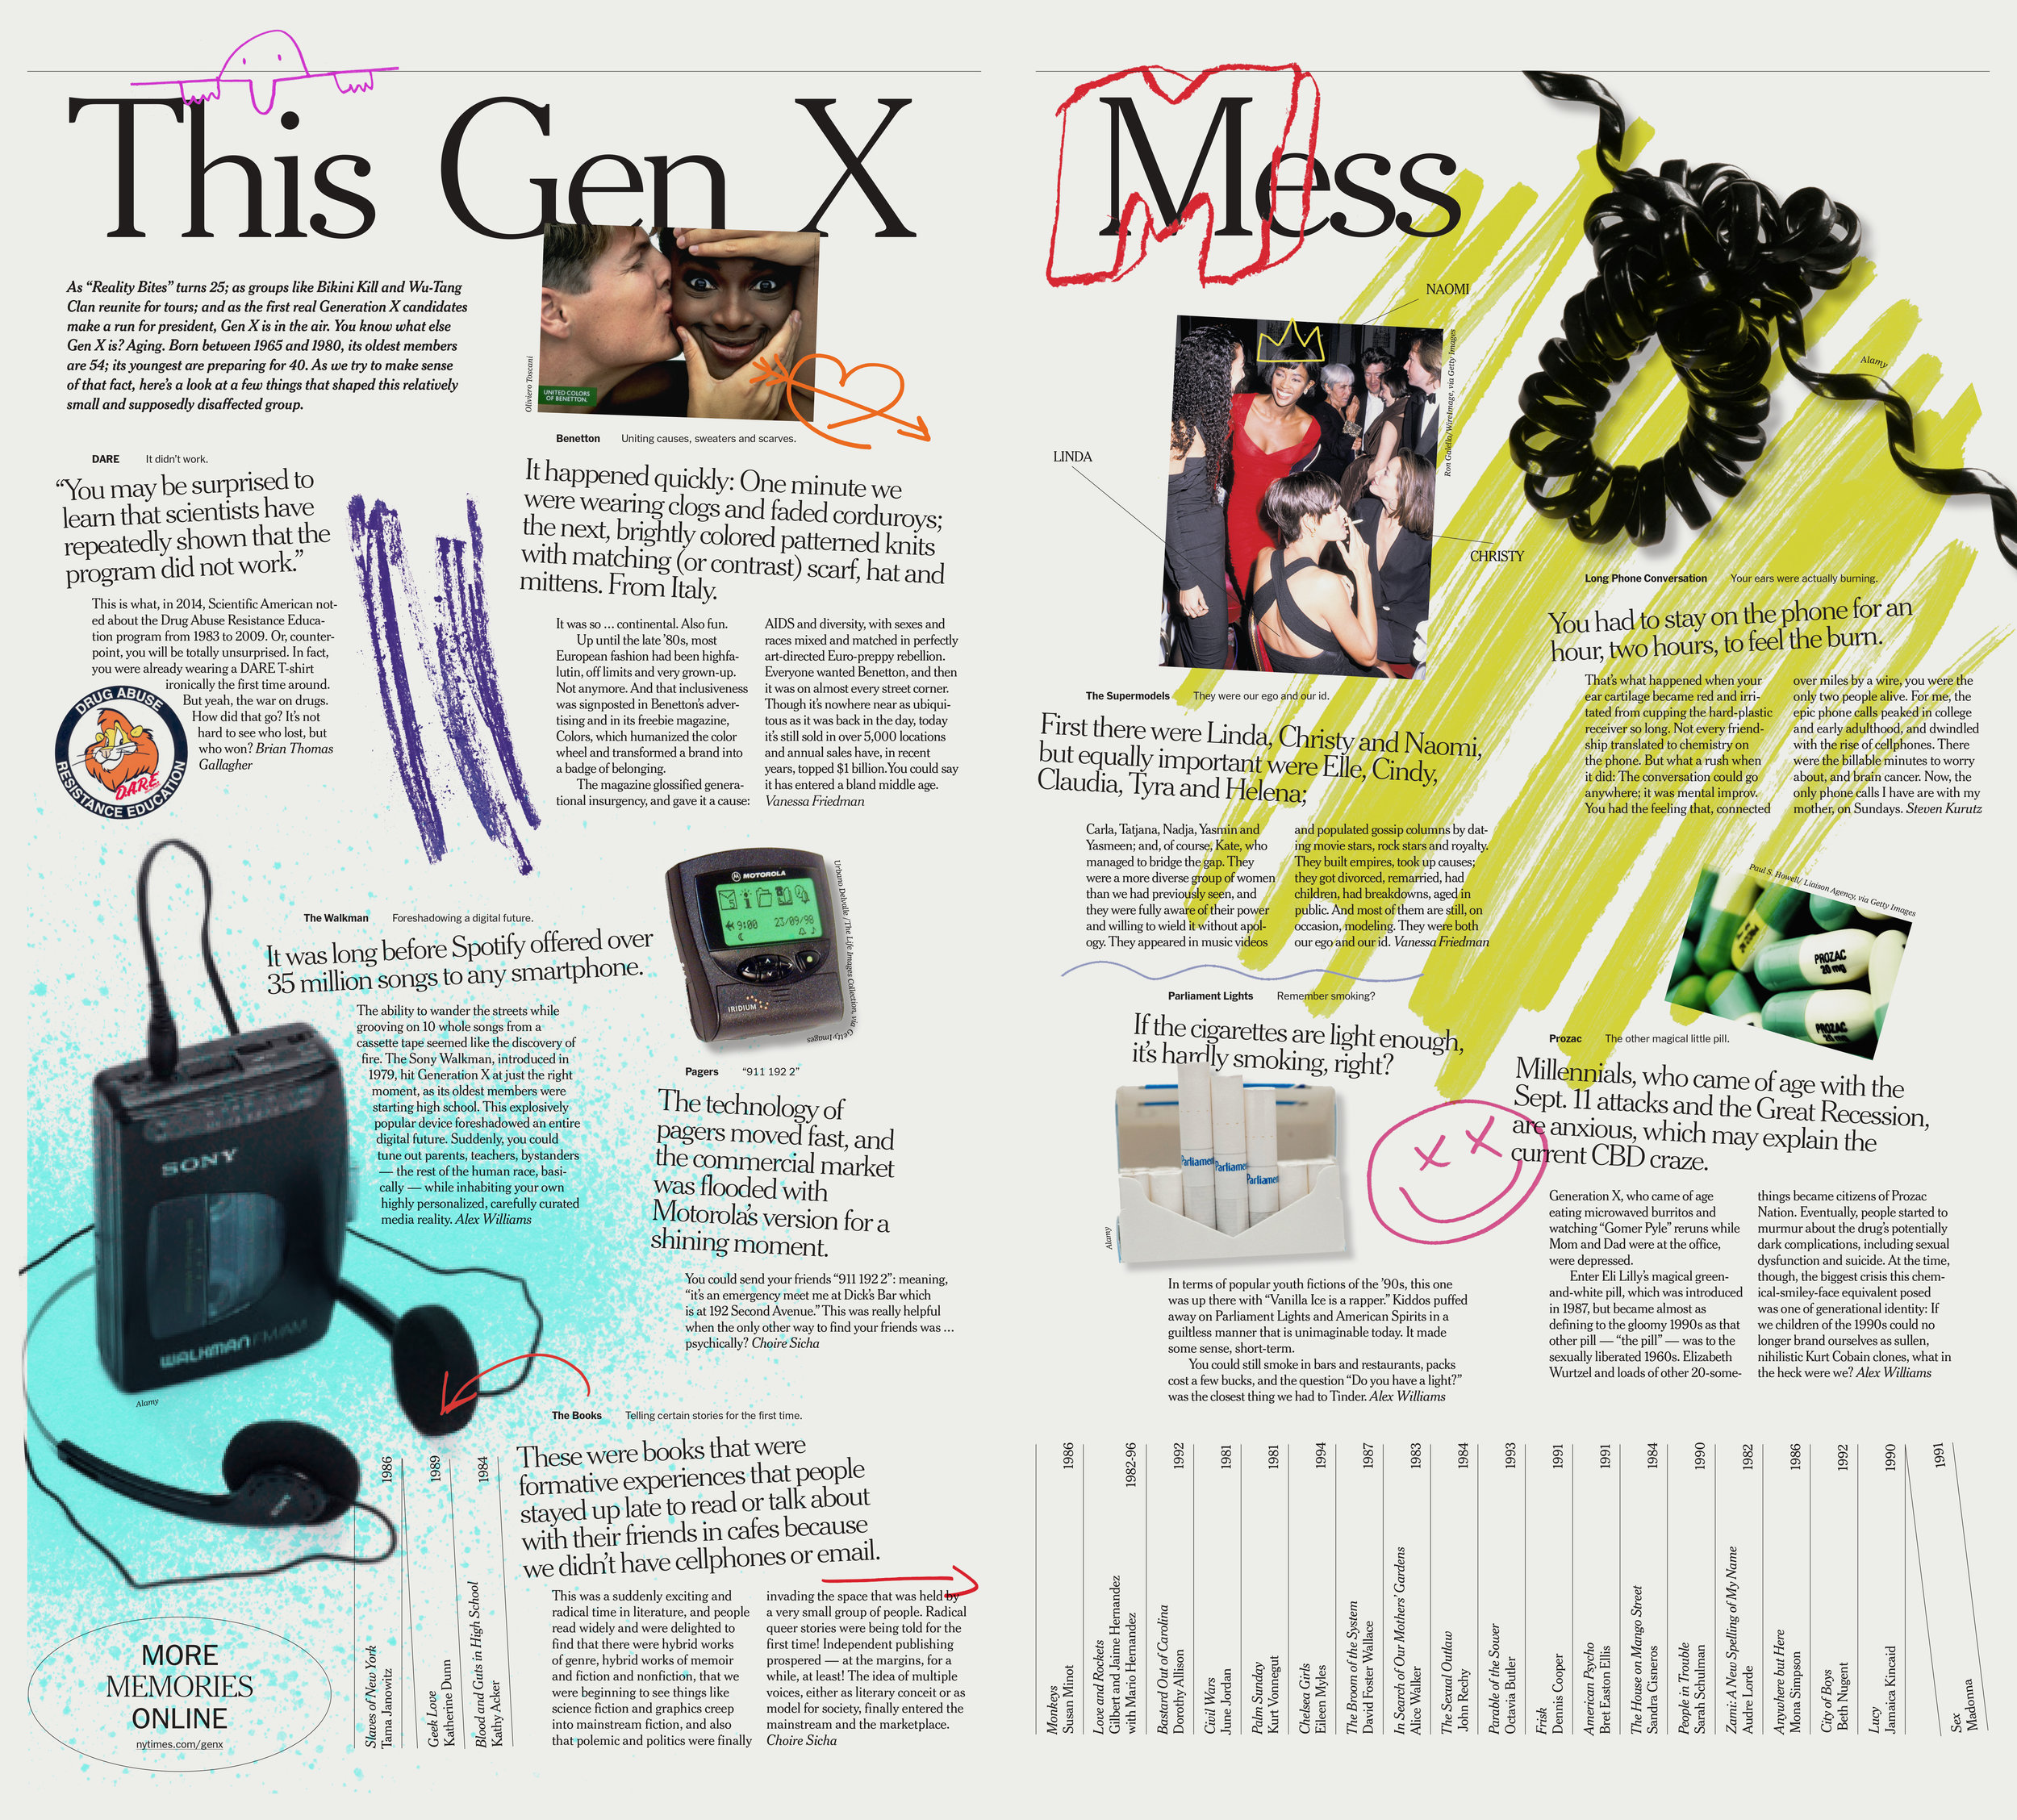 Glimpse of the  NYT Styles Gen X package  in the newspaper